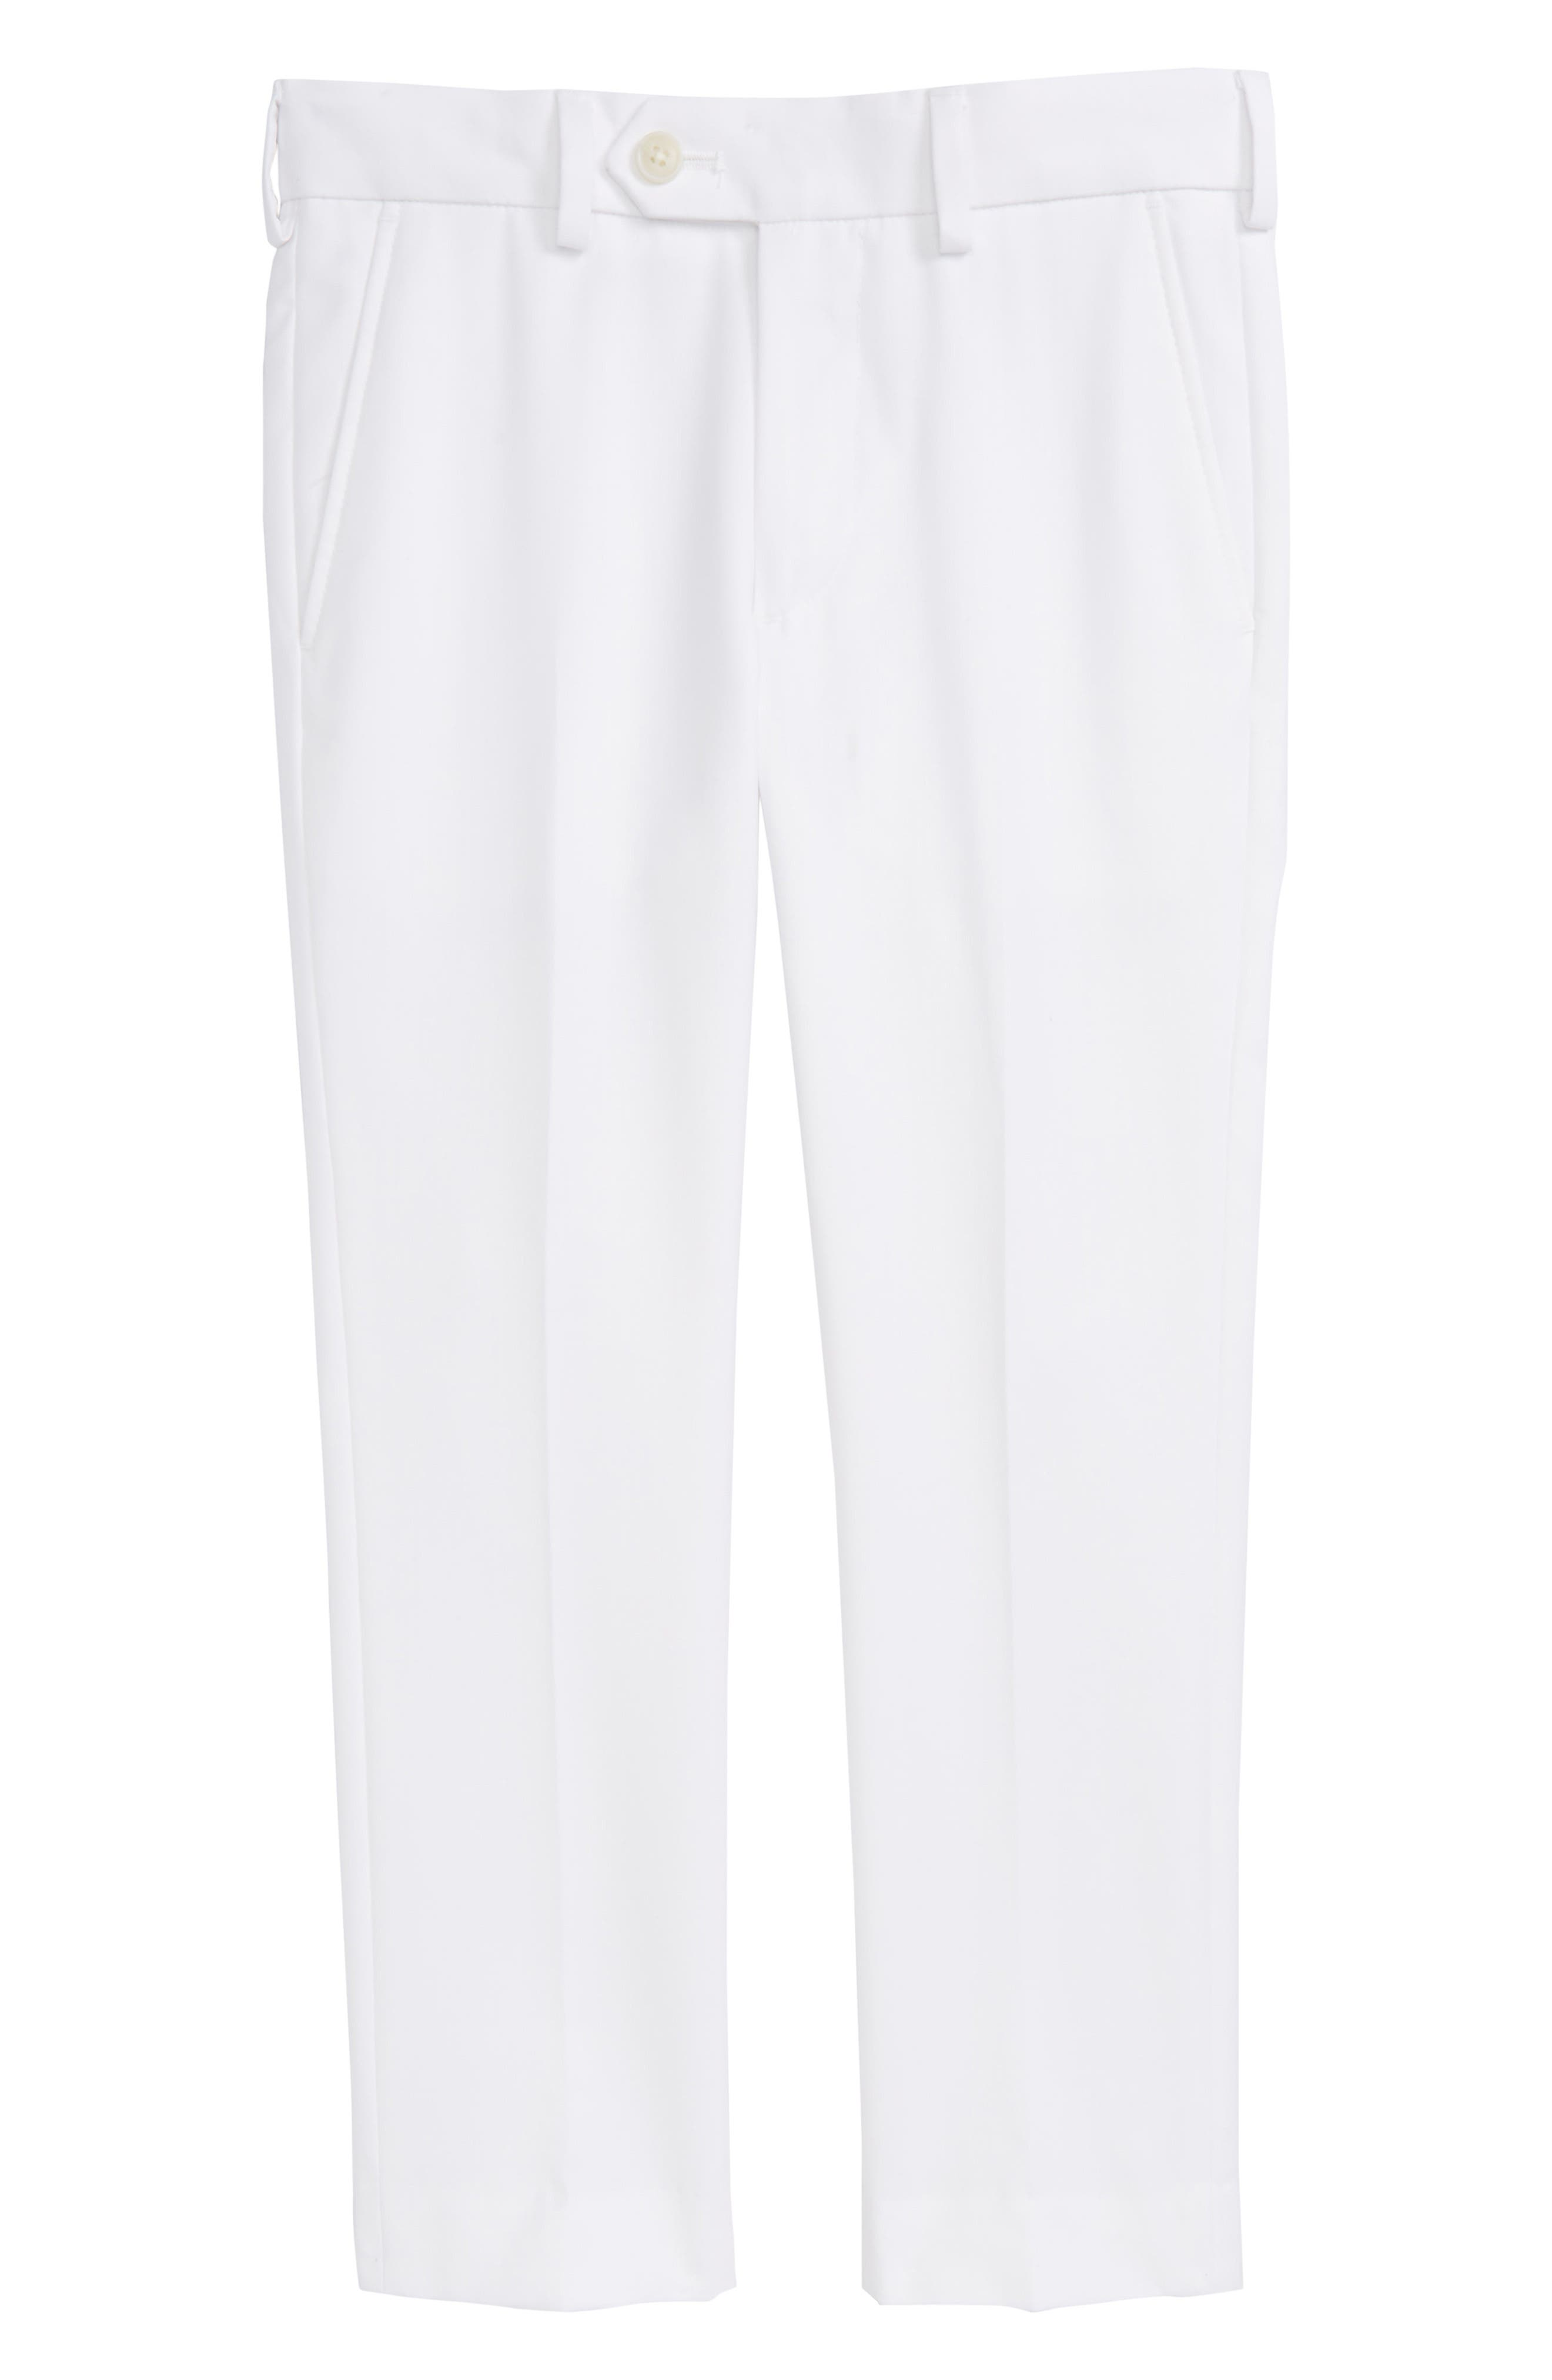 Flat Front Trousers,                             Main thumbnail 1, color,                             White